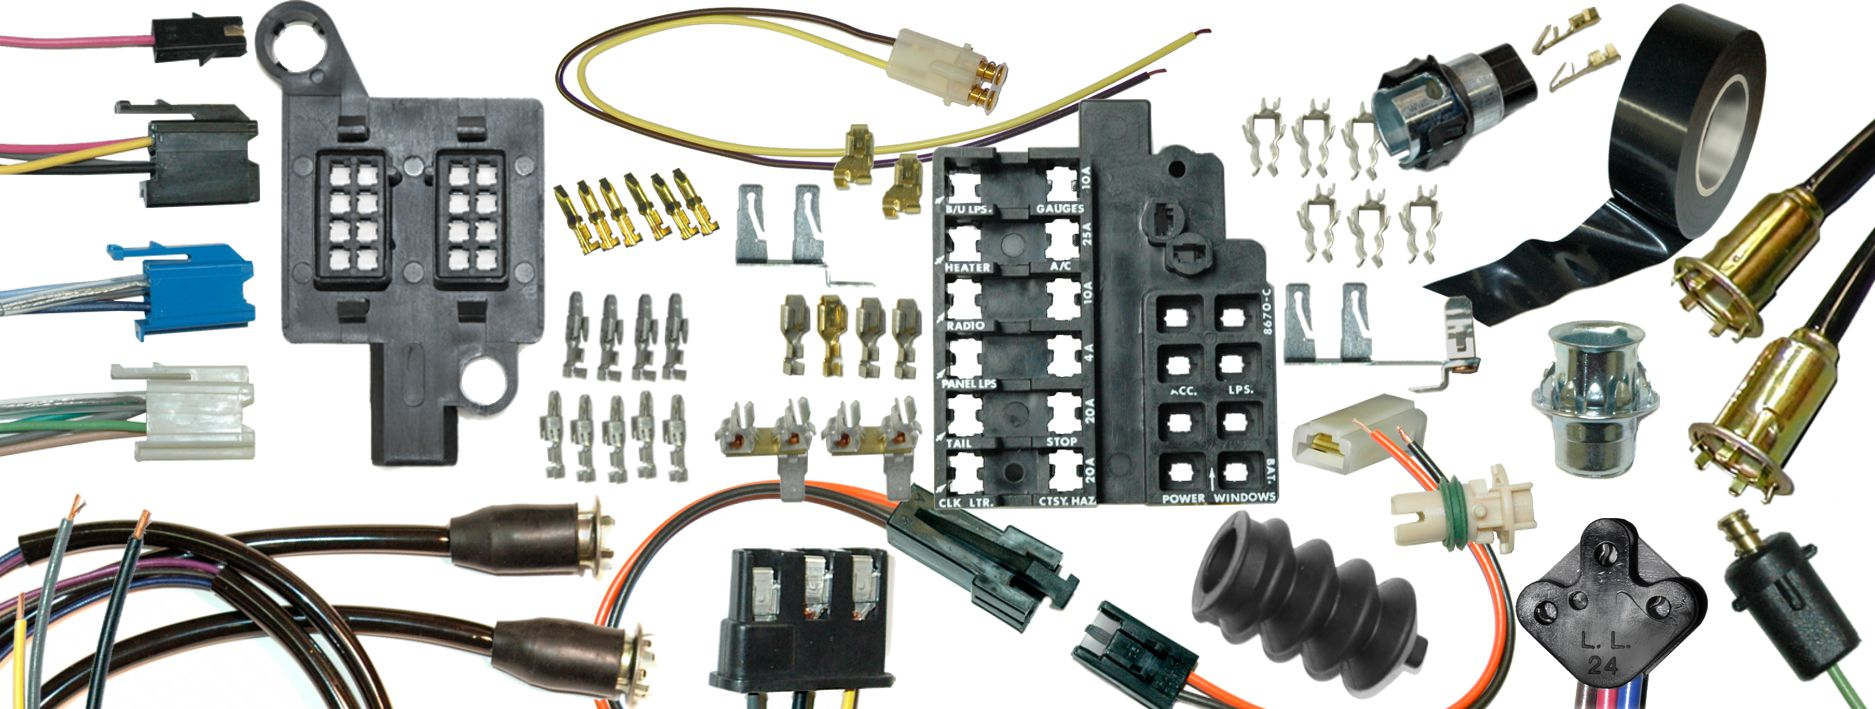 Repair Components (for Wiring Harnesses)